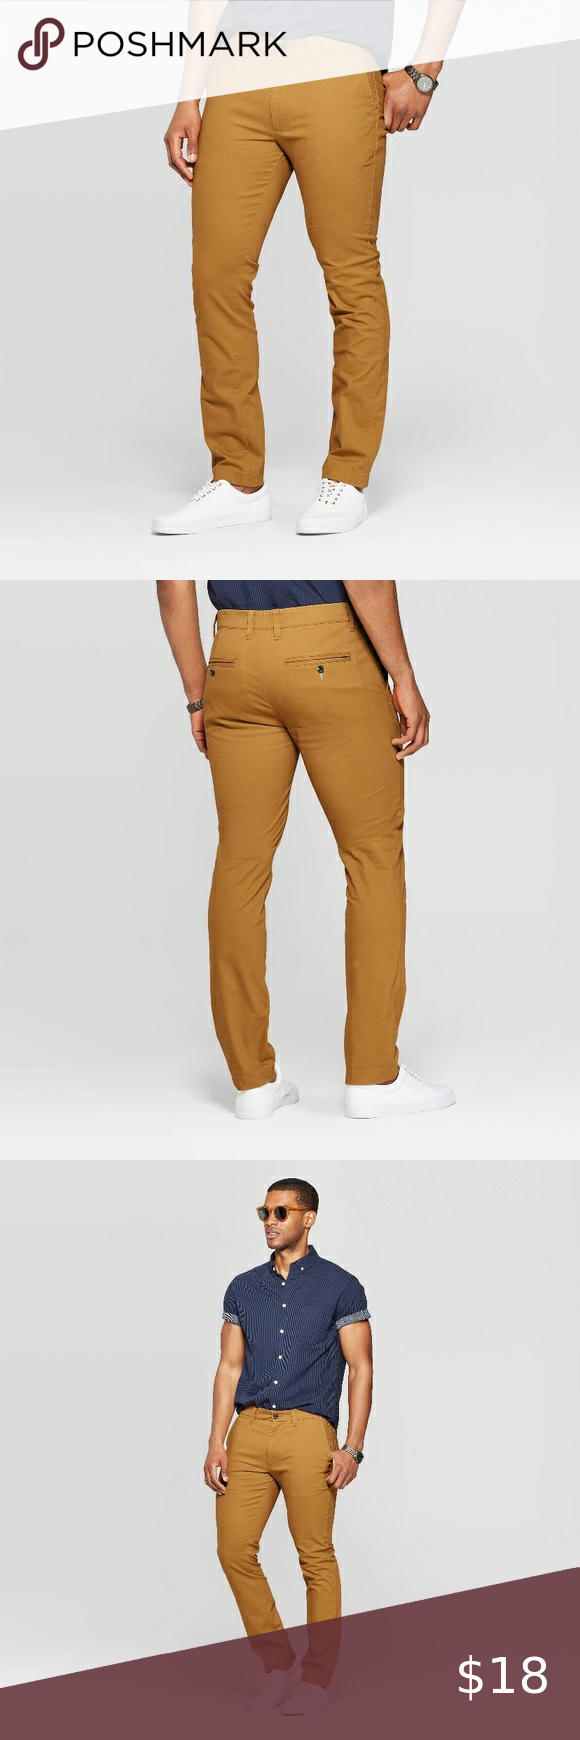 Men's Skinny Chino Pants - 28x30 Men's skinny fit chino pants Color brown decaf 28x30 Goodfellow & C